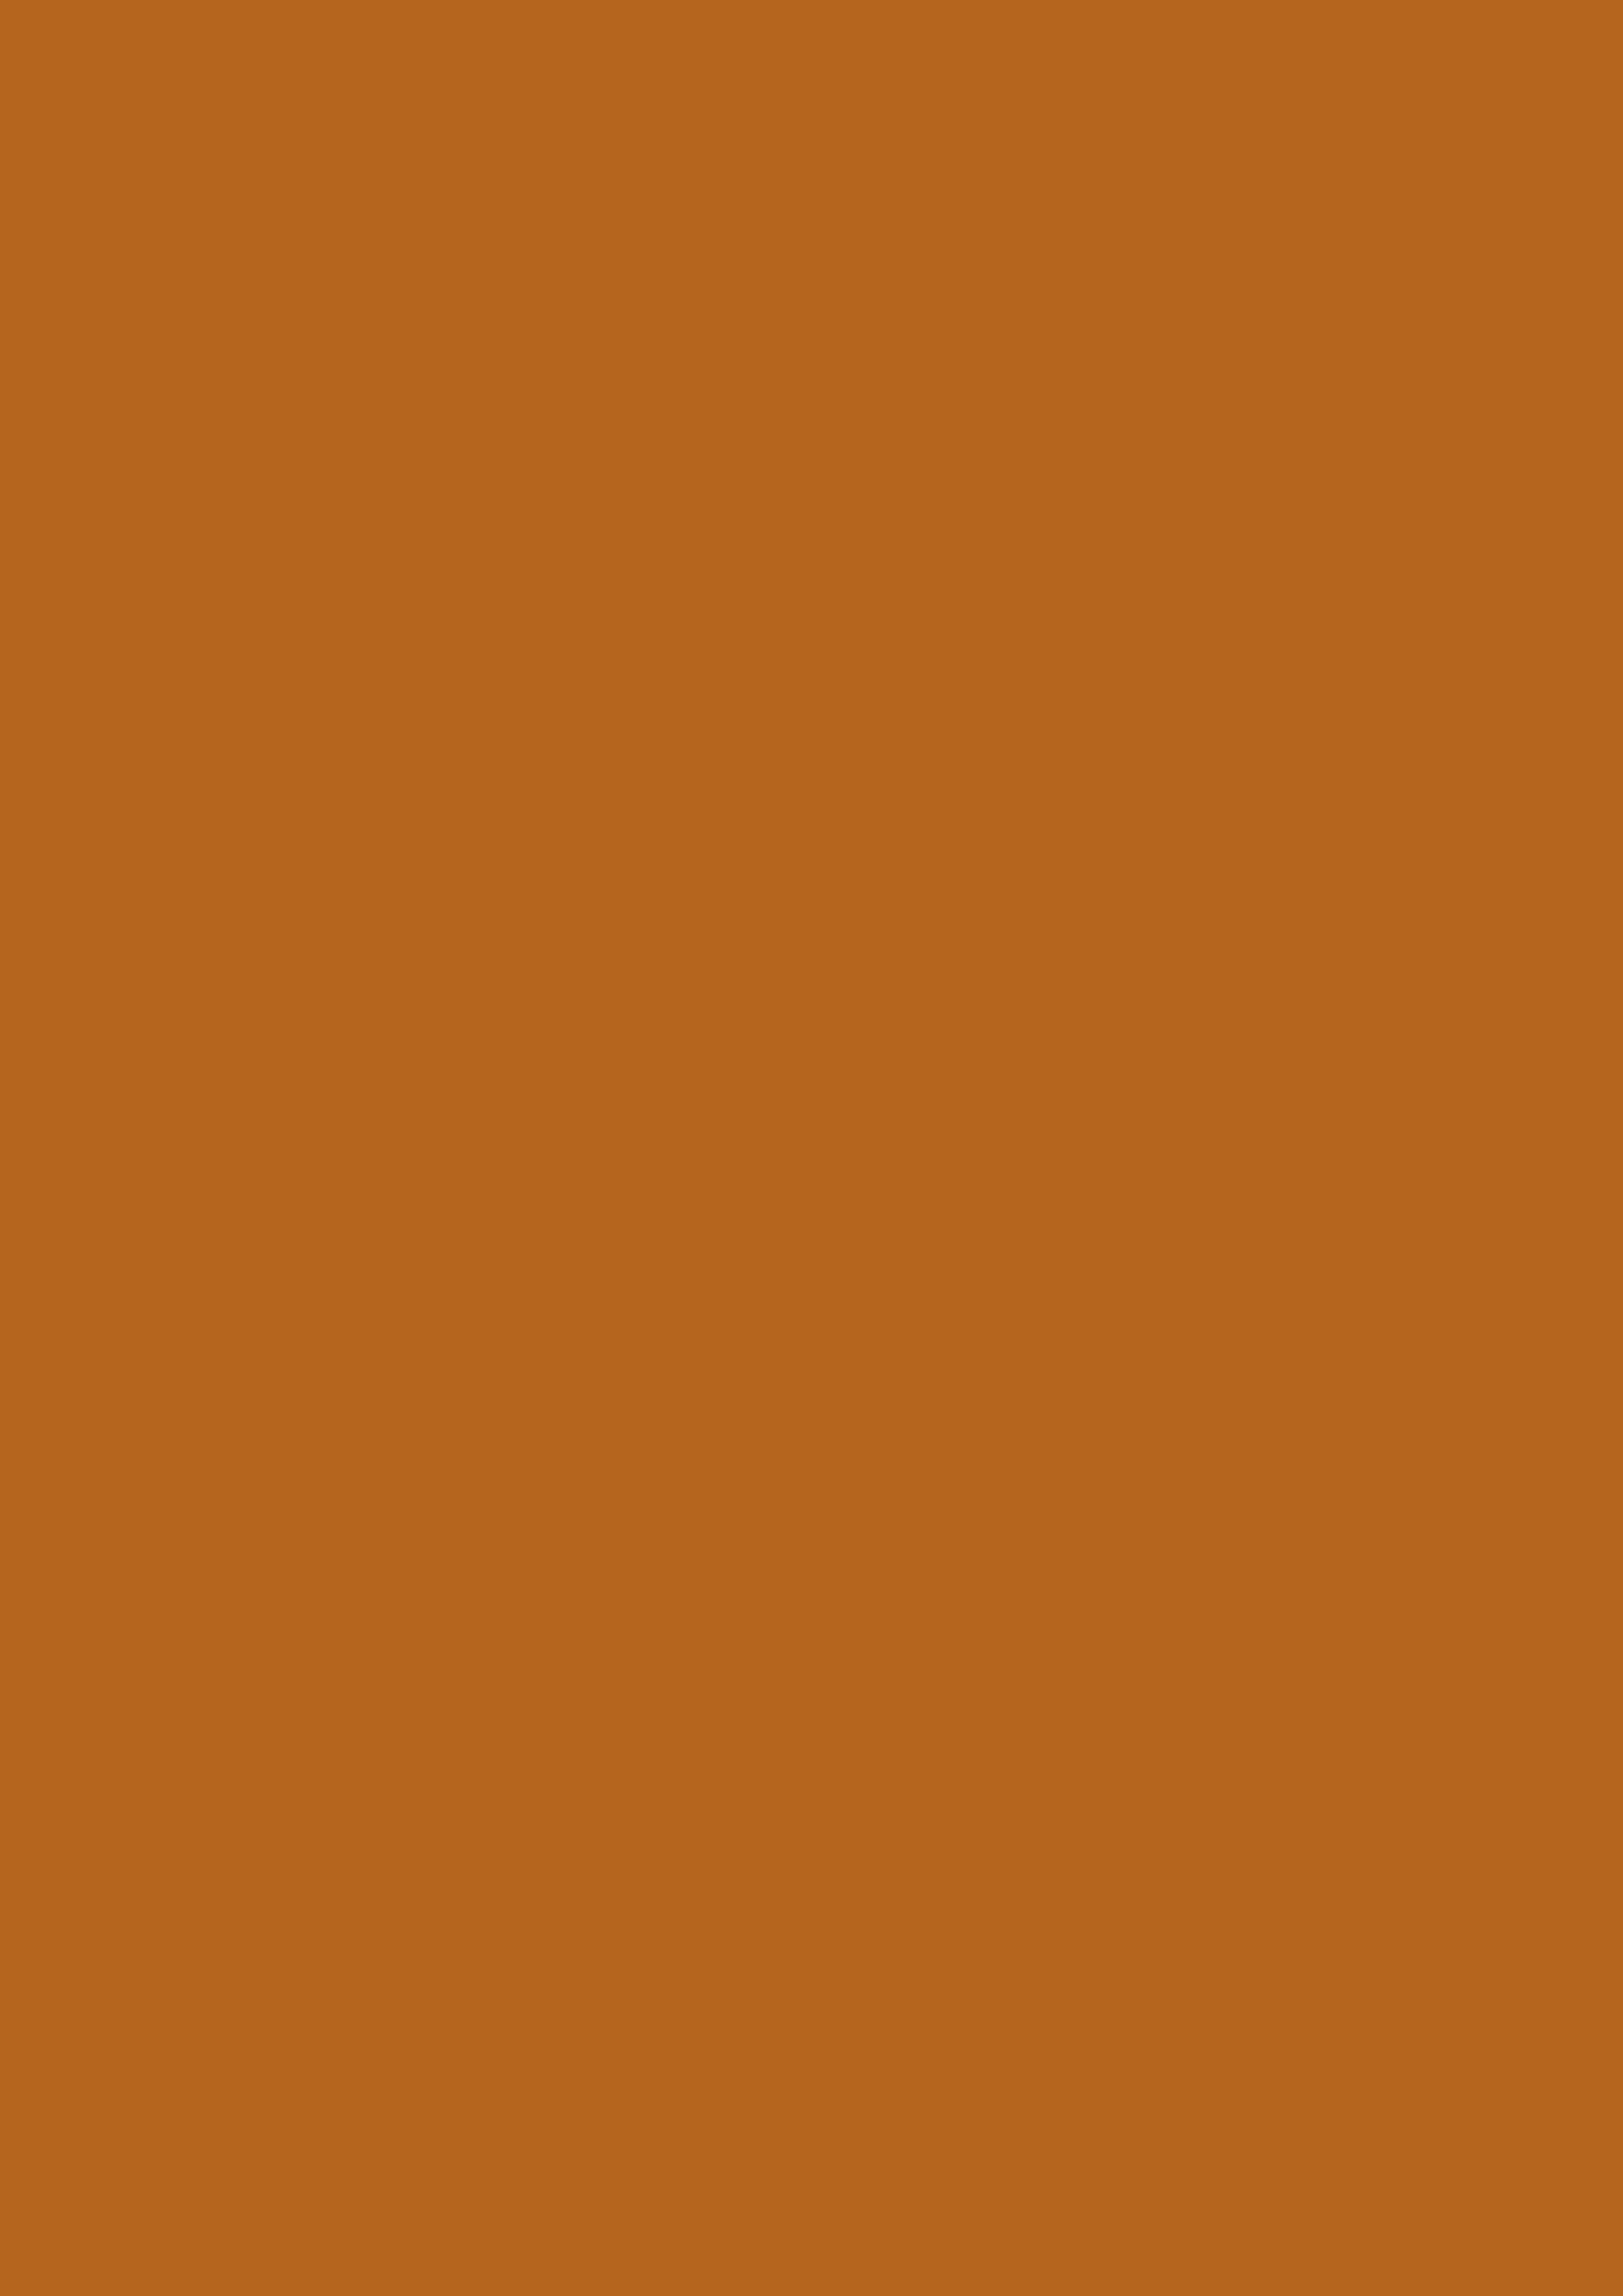 2480x3508 Light Brown Solid Color Background